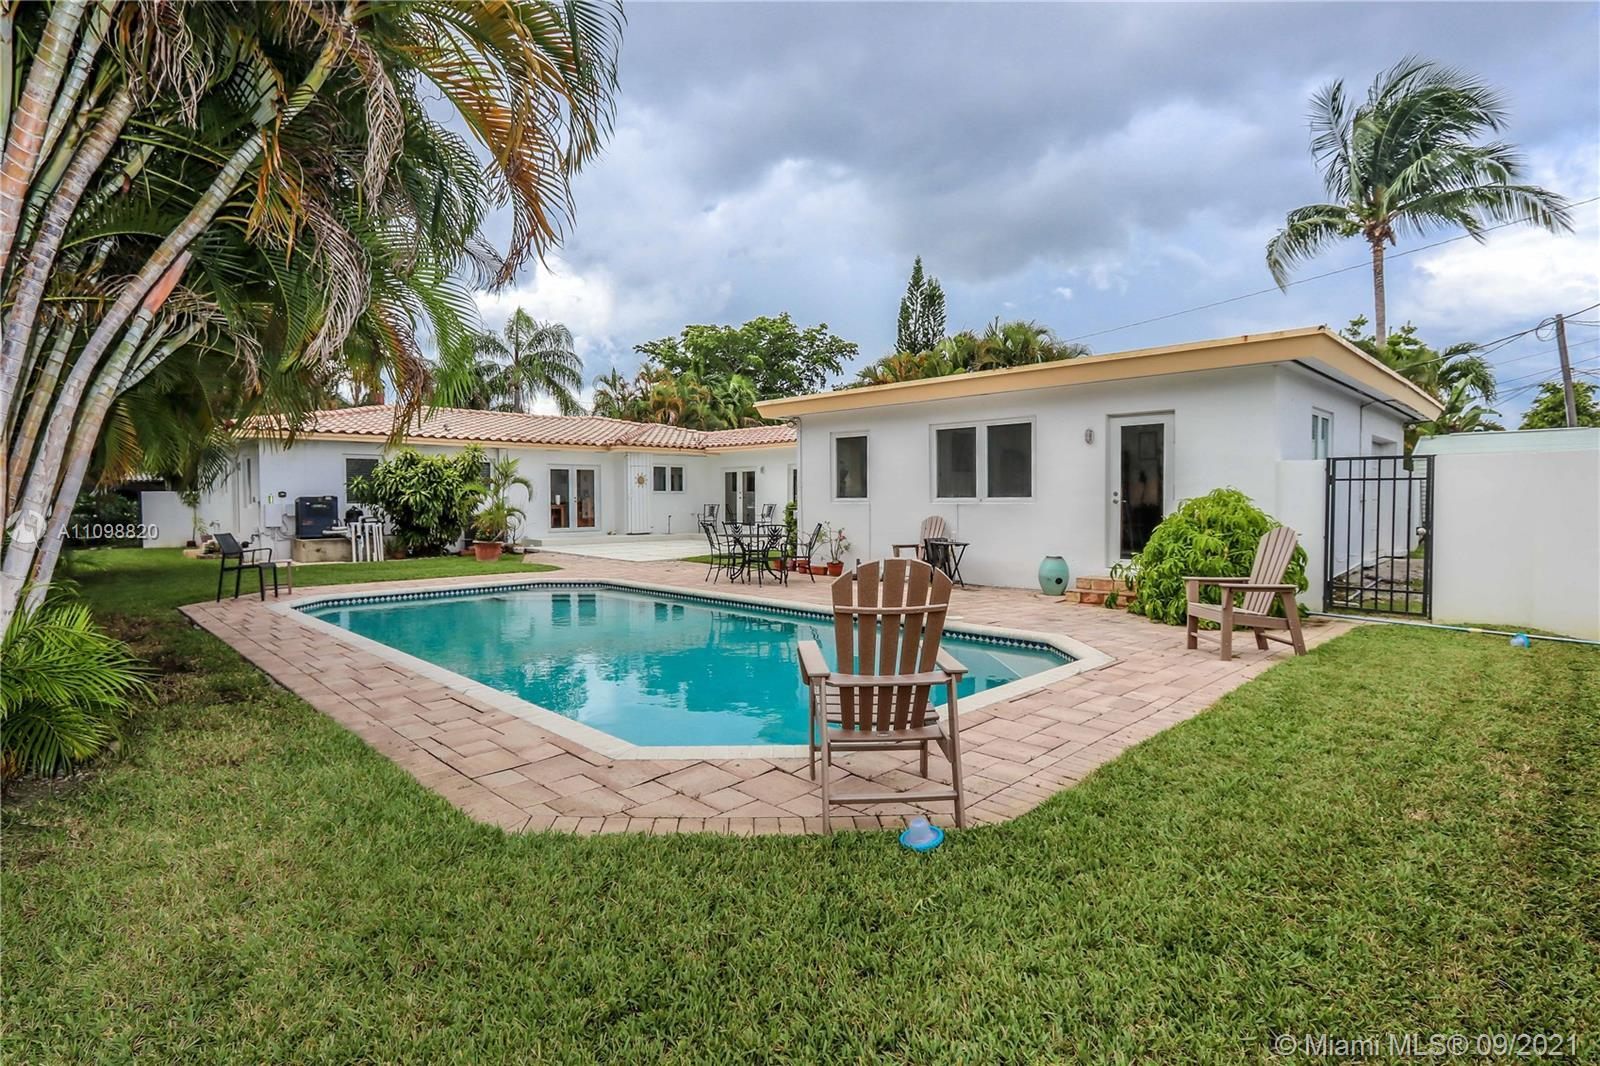 GREAT OPPORTUNITY 5BD/4BA BEAUTIFUL POOL ON OVERSIZED LOT IN THE HEART OF HOLLYWOOD LAKES! MAIN HOUS